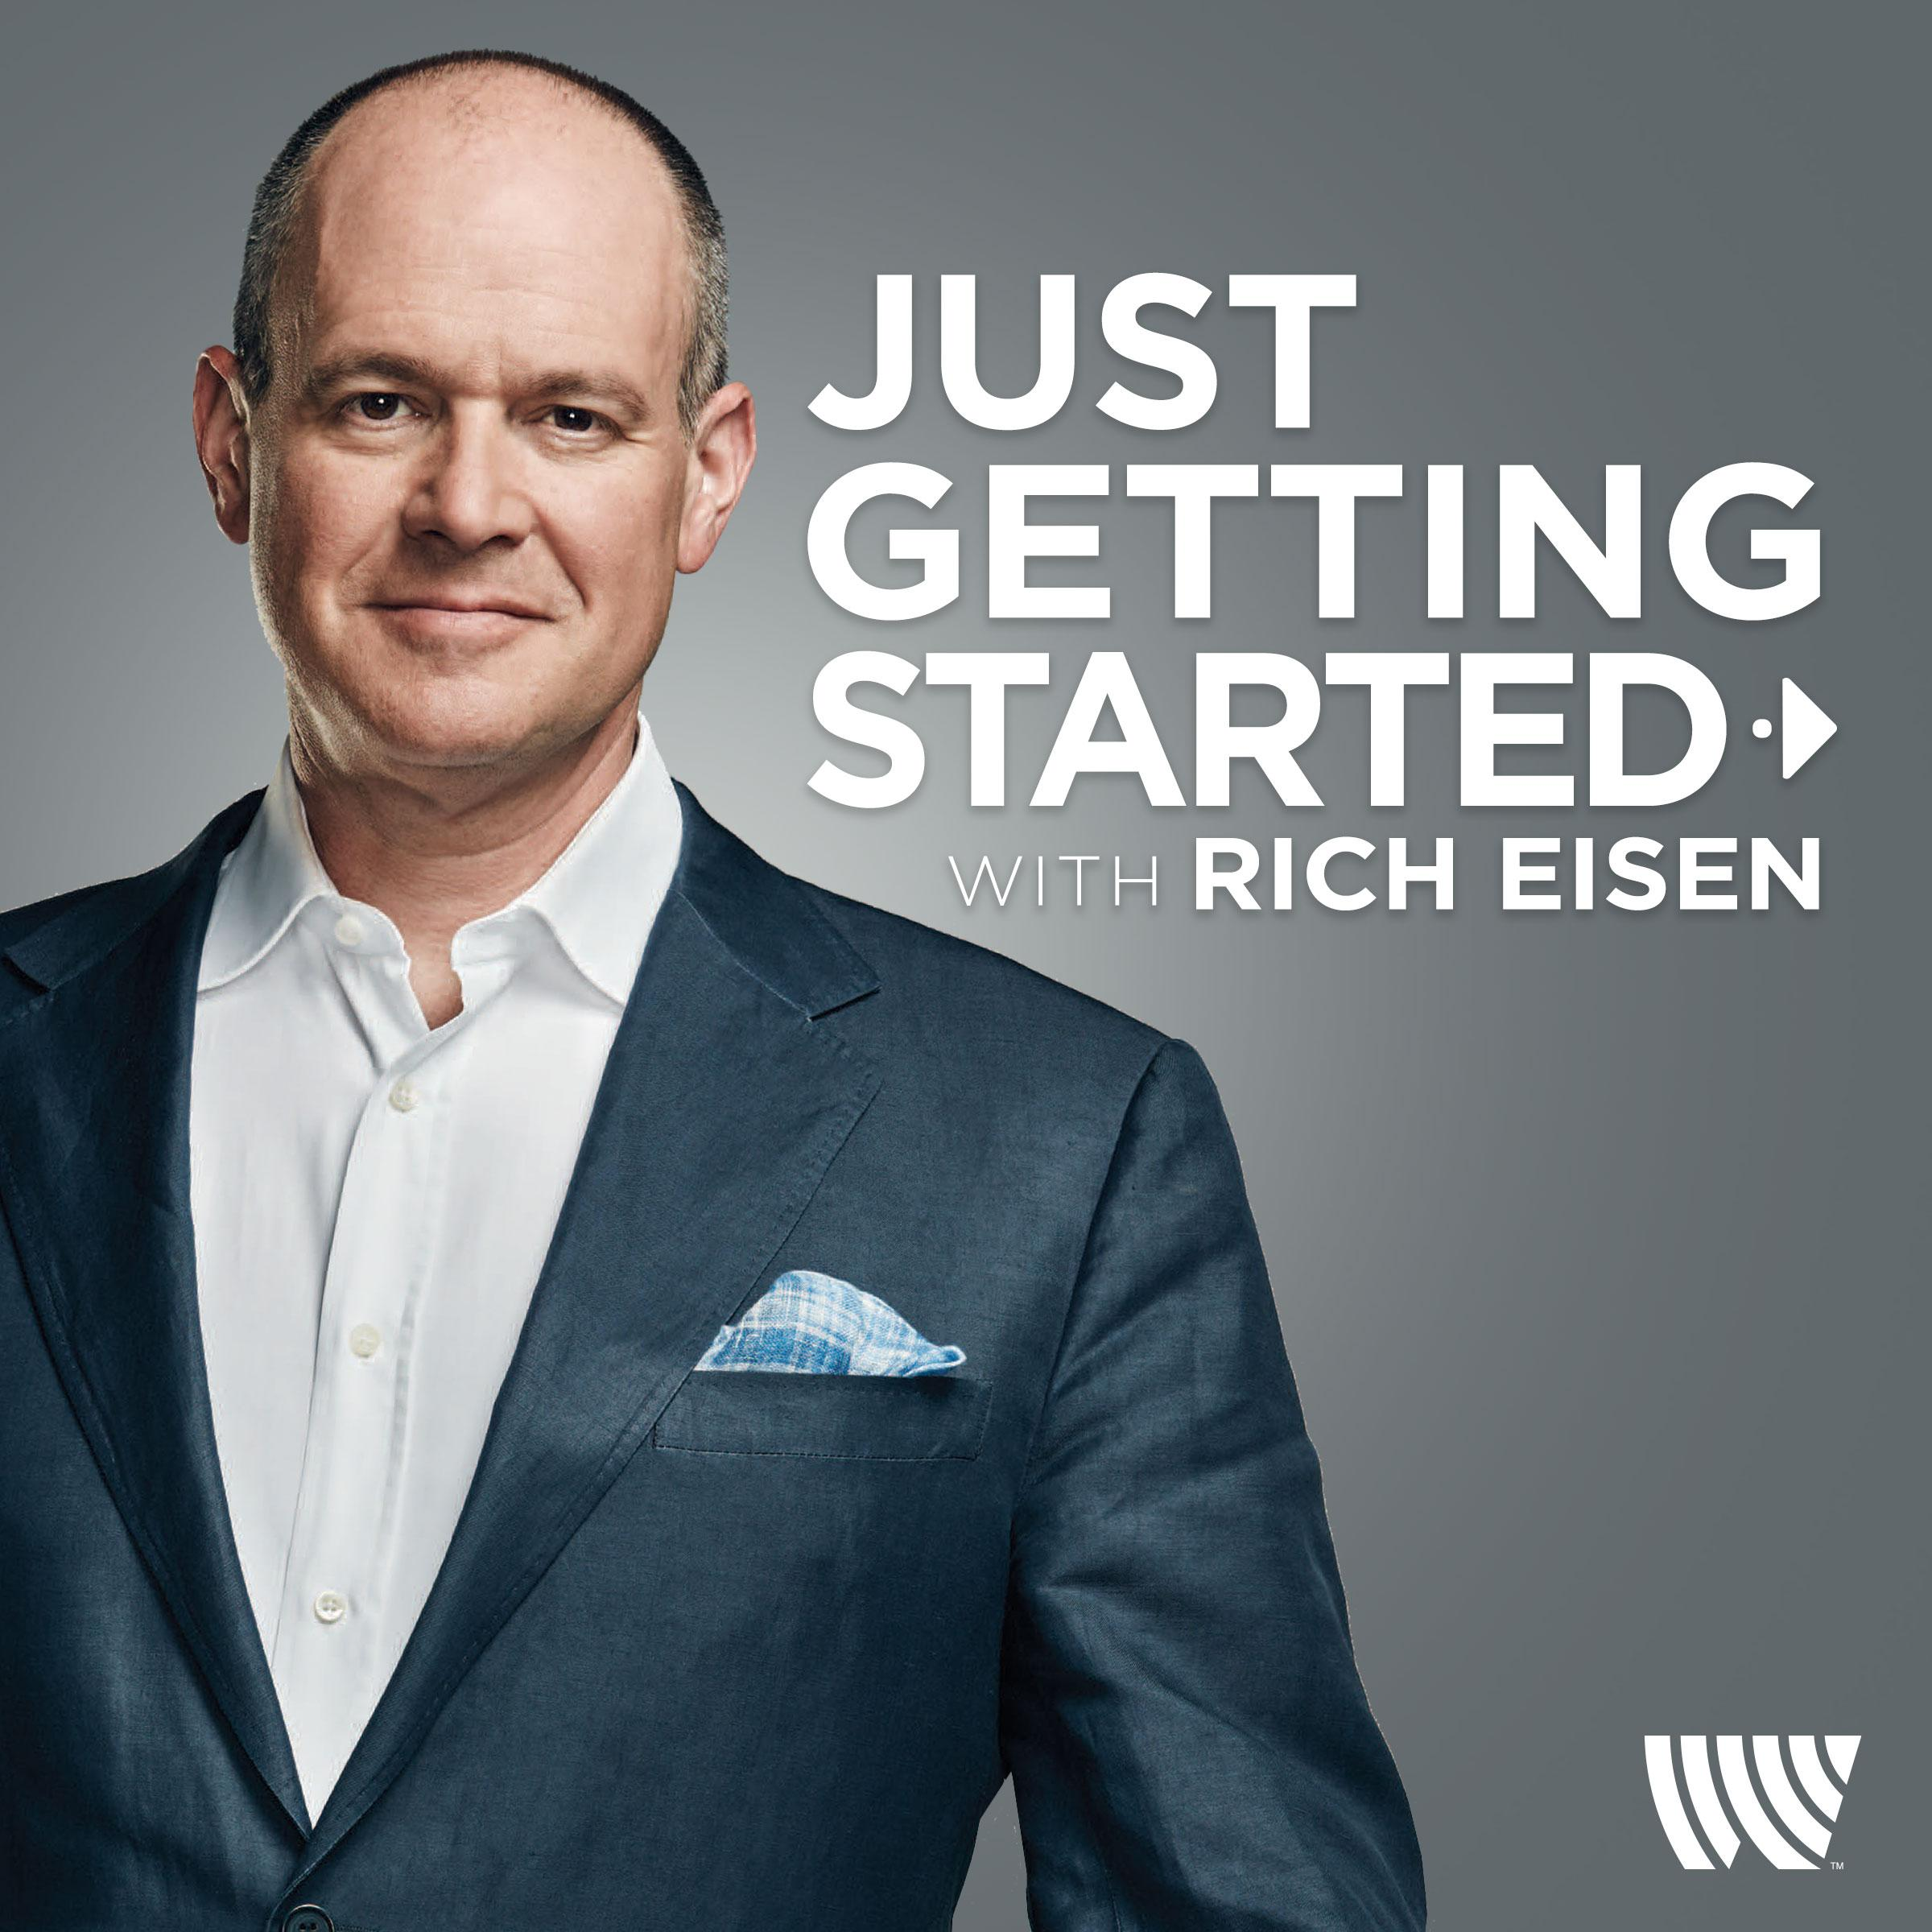 Just Getting Started With Rich Eisen Launches Today On The Westwood One Podcast Network